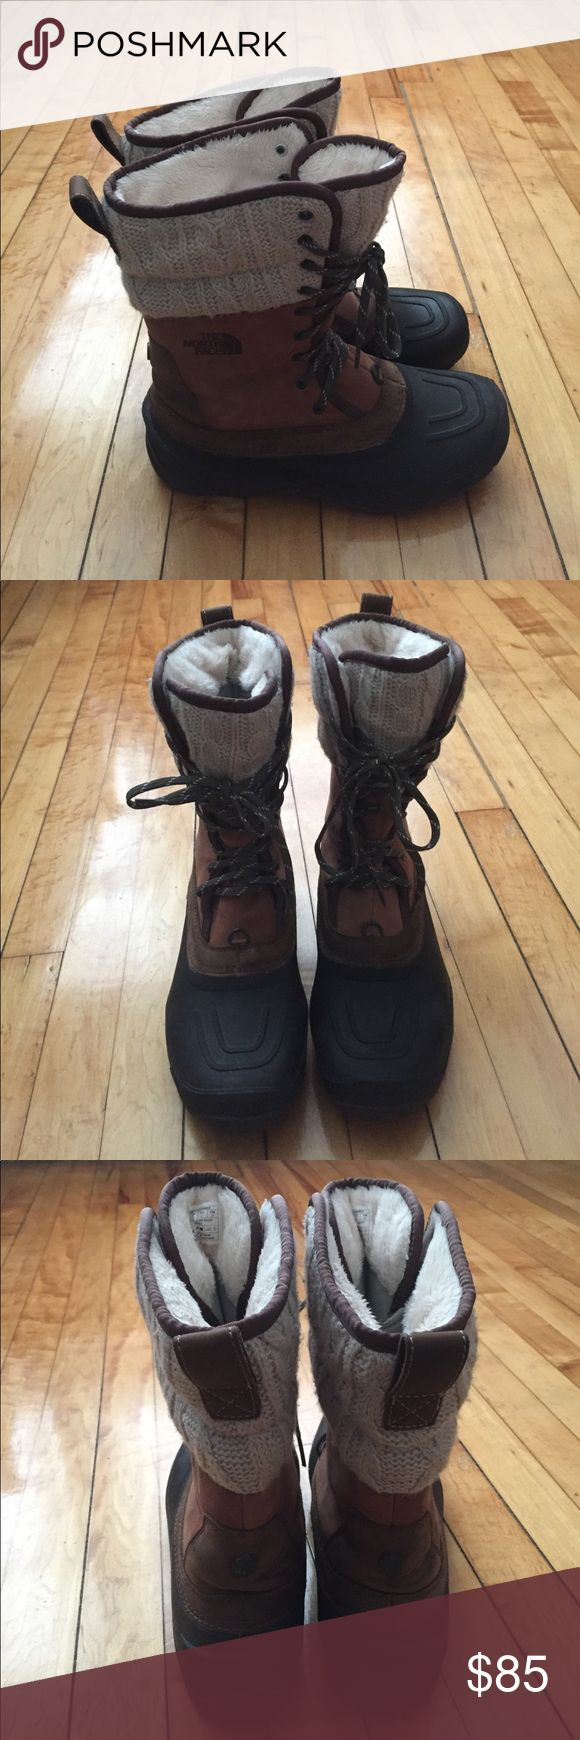 North Face Winter Boots 2014/2015 North Face snow boots. Brown with grey/tan quilted detail and dark green laces. In good condition. Worn very few times. Clean, warm, and comfortable. TNF Winter Grip soles. North Face Shoes Winter & Rain Boots